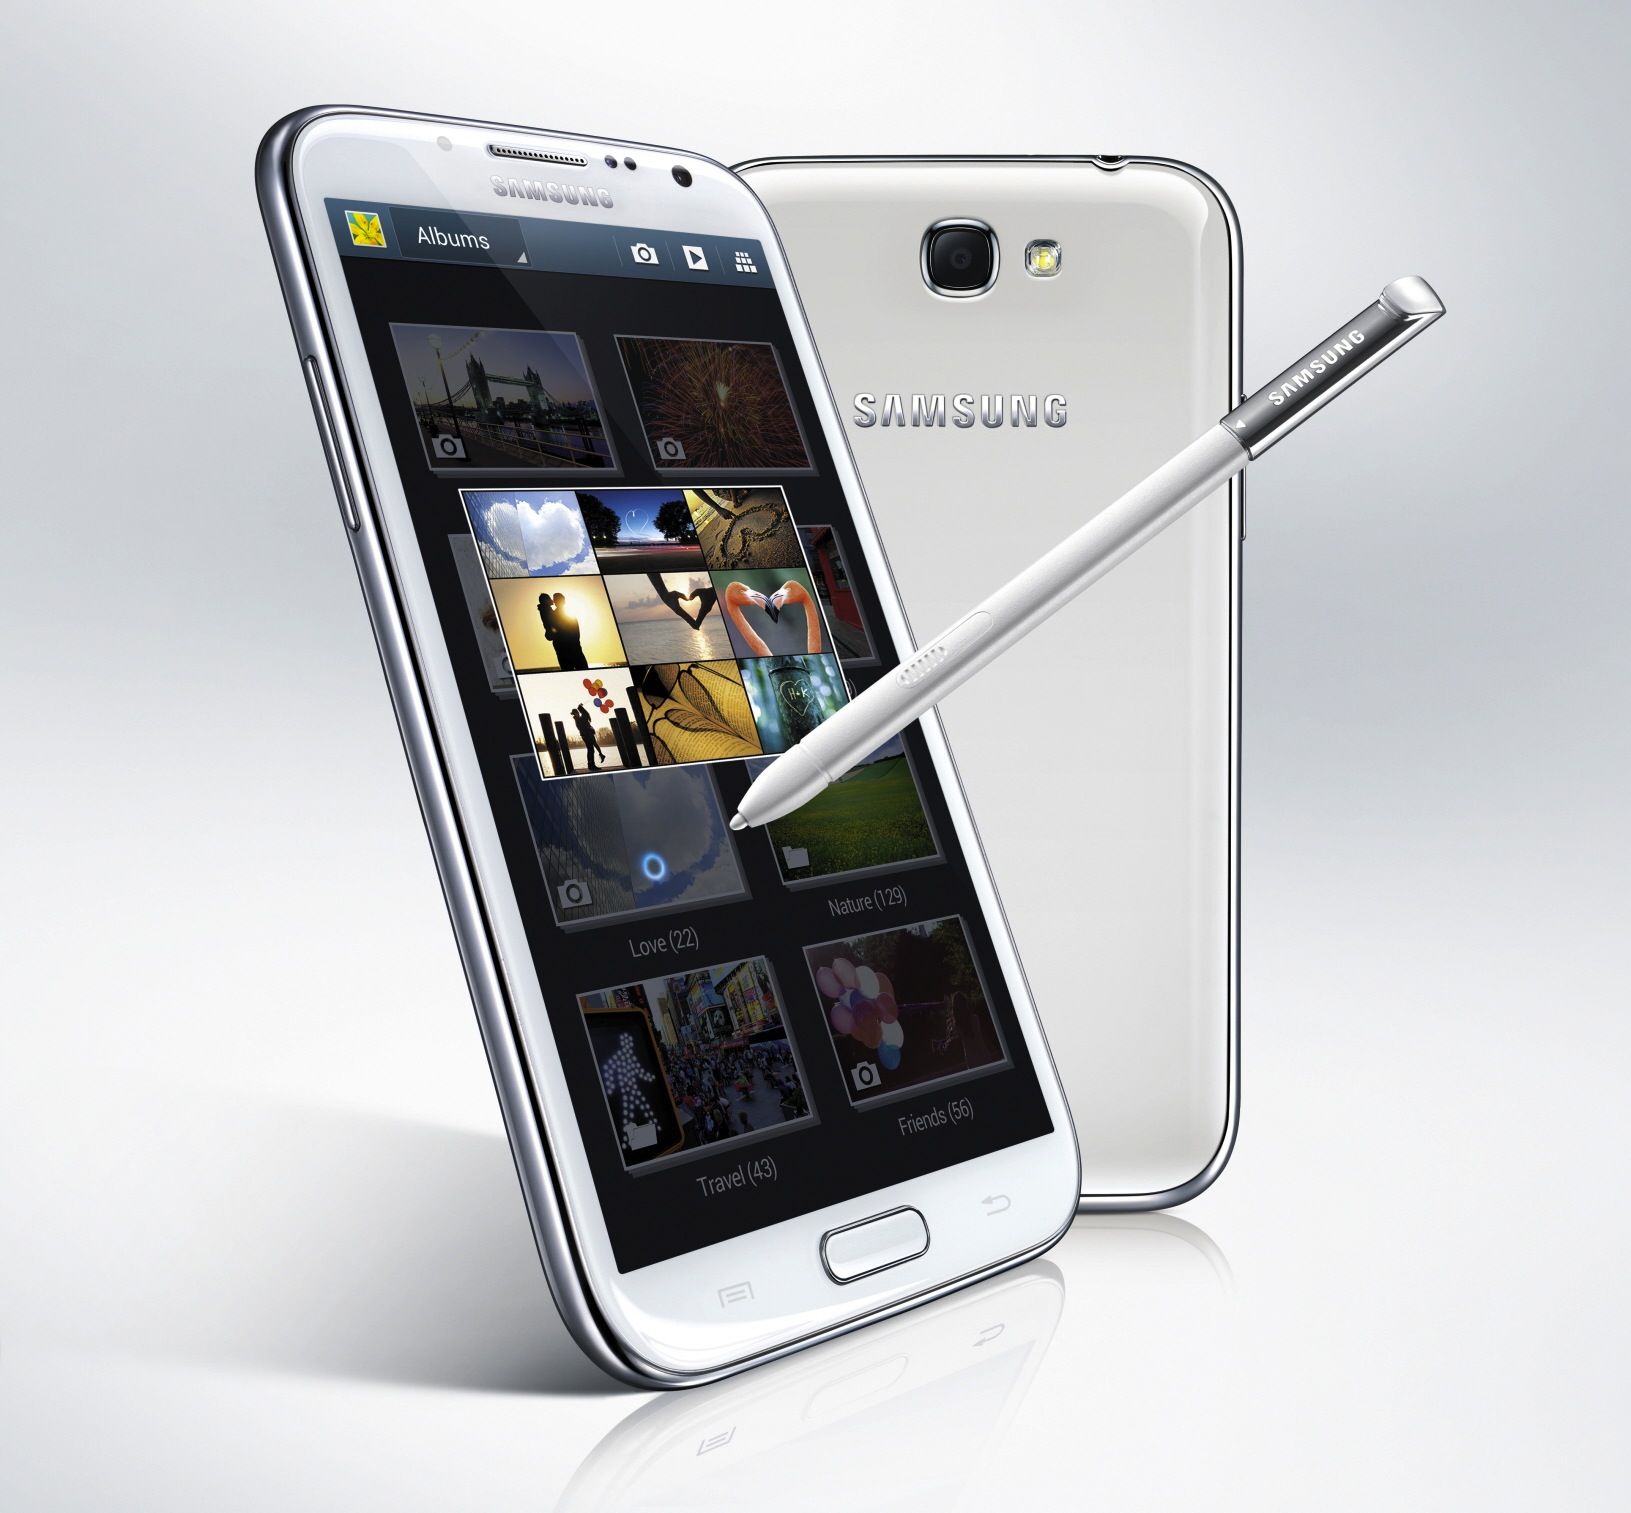 Samsung's Galaxy Note II sales top 3 million units in 37 days